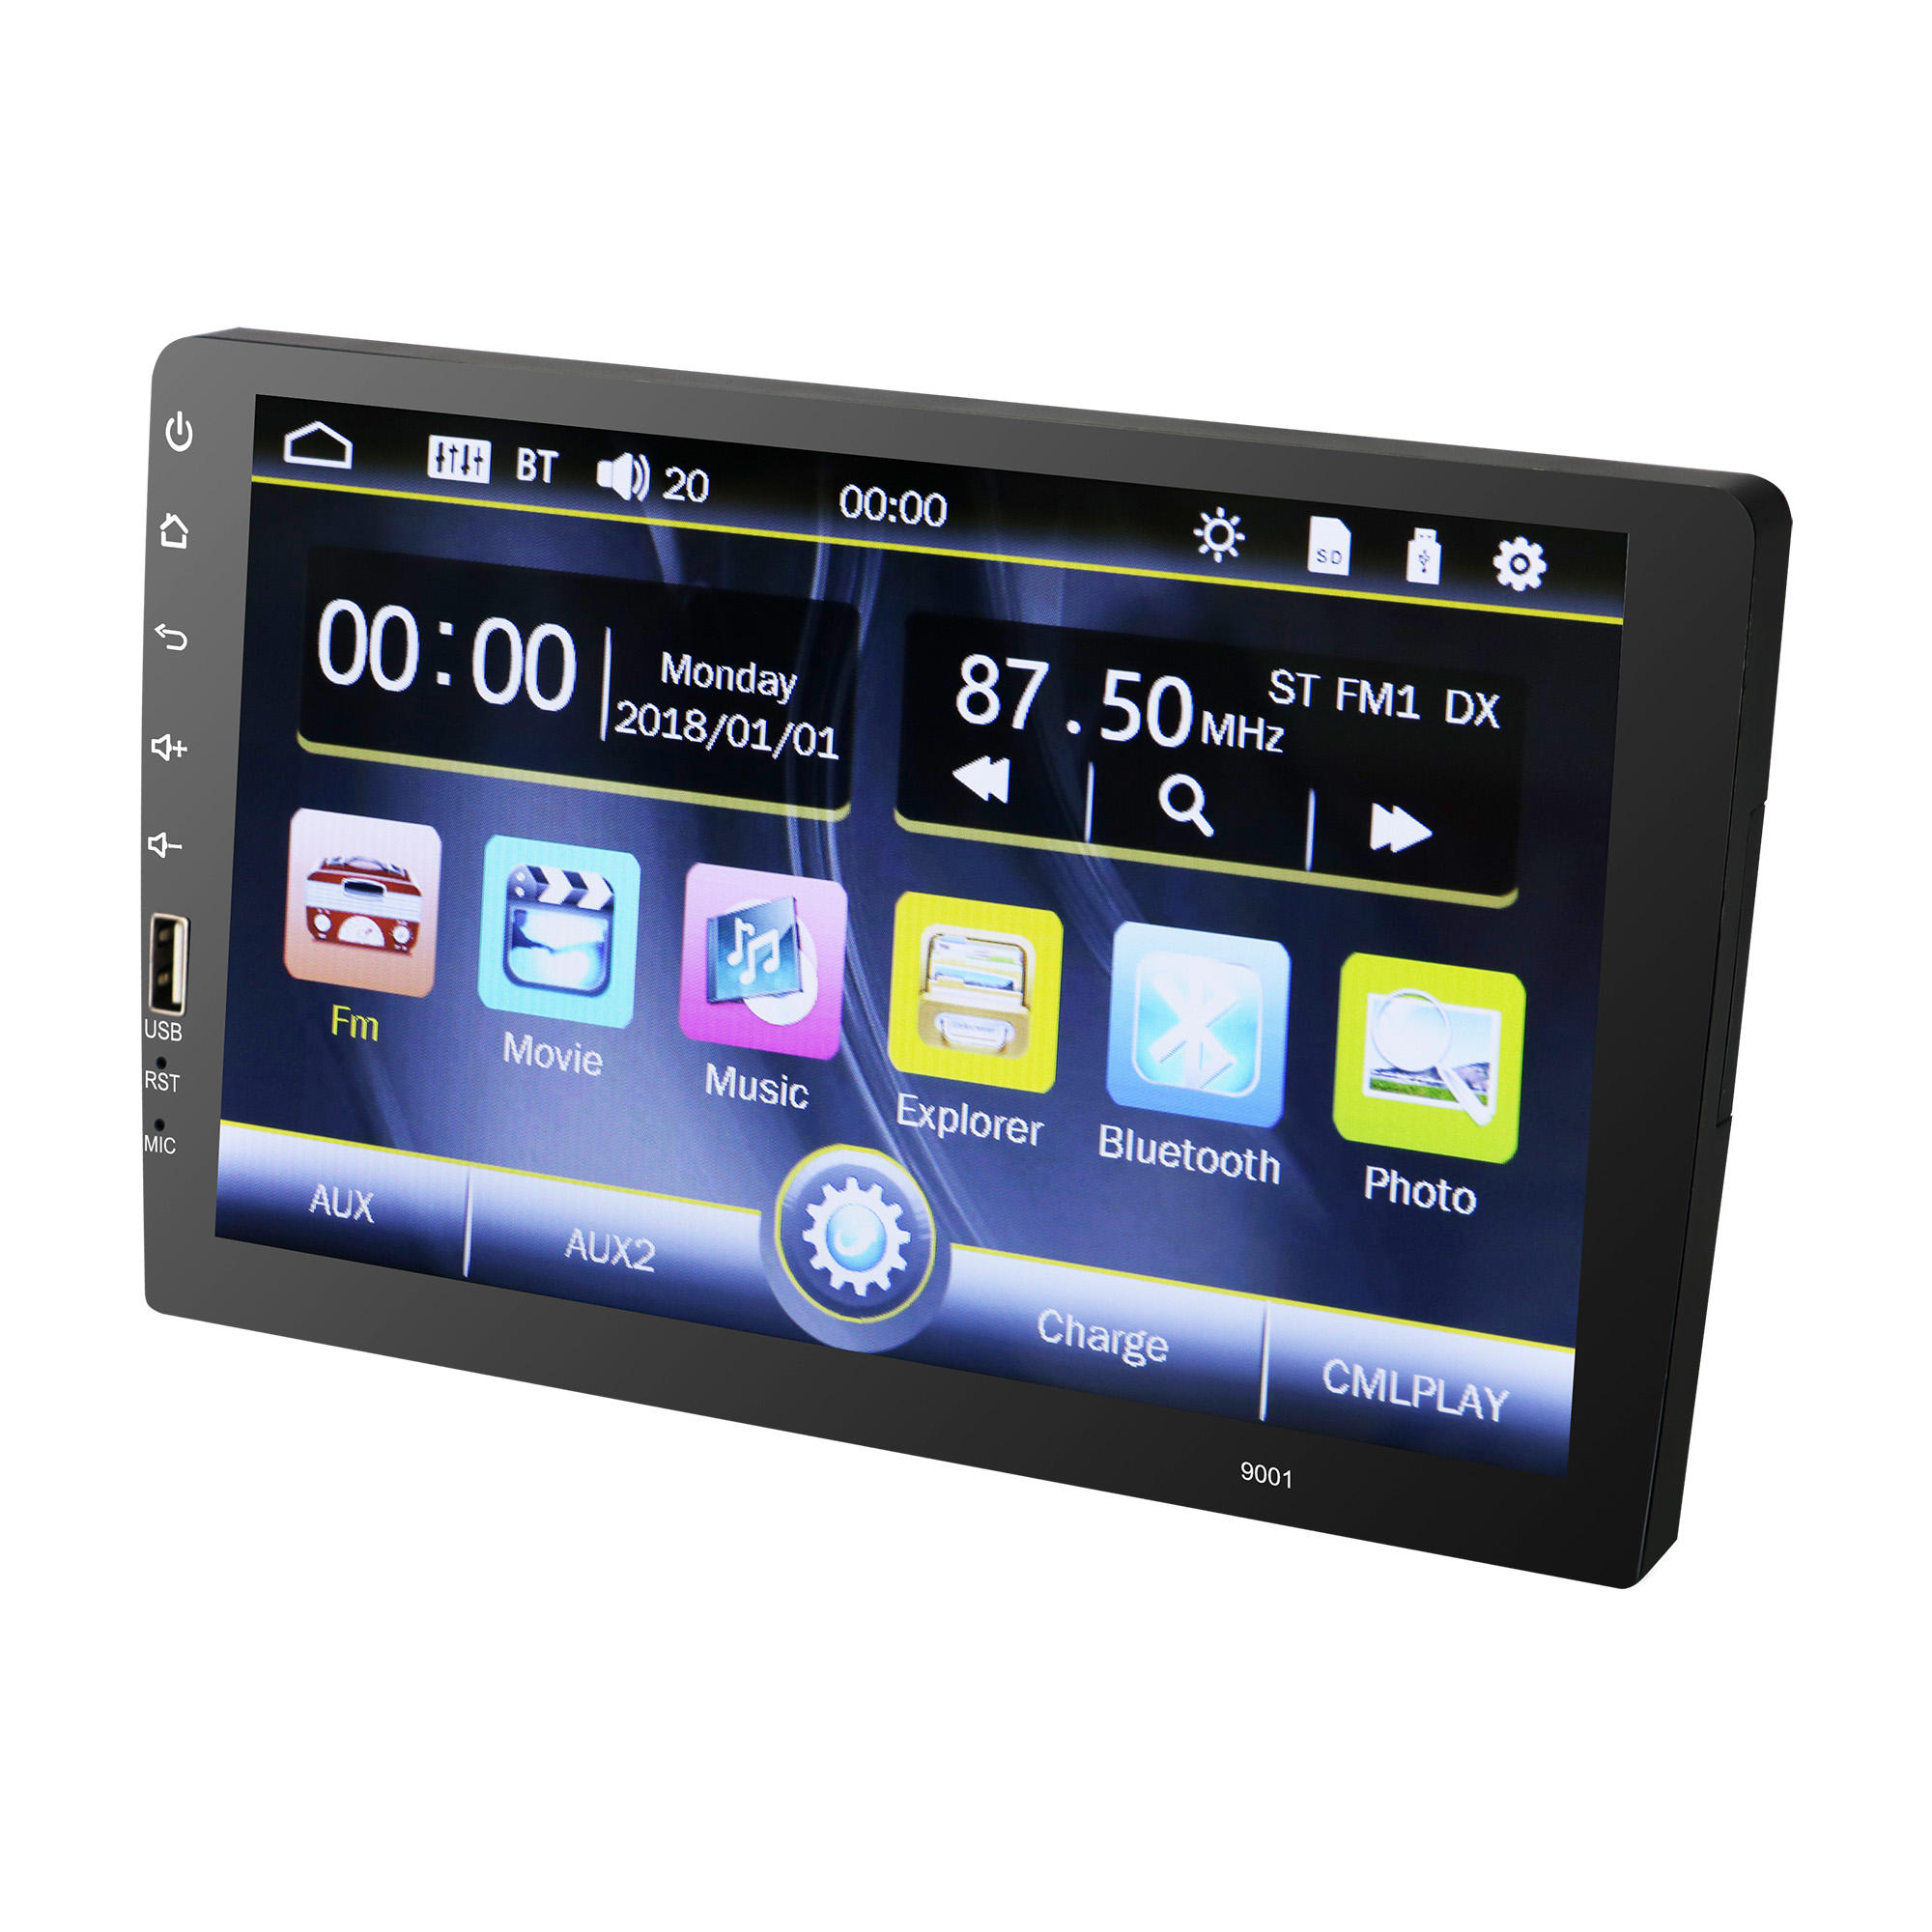 2 DIN Android Mobil Stereo Universal Gps Navigasi 9 Inch Mobil Radio